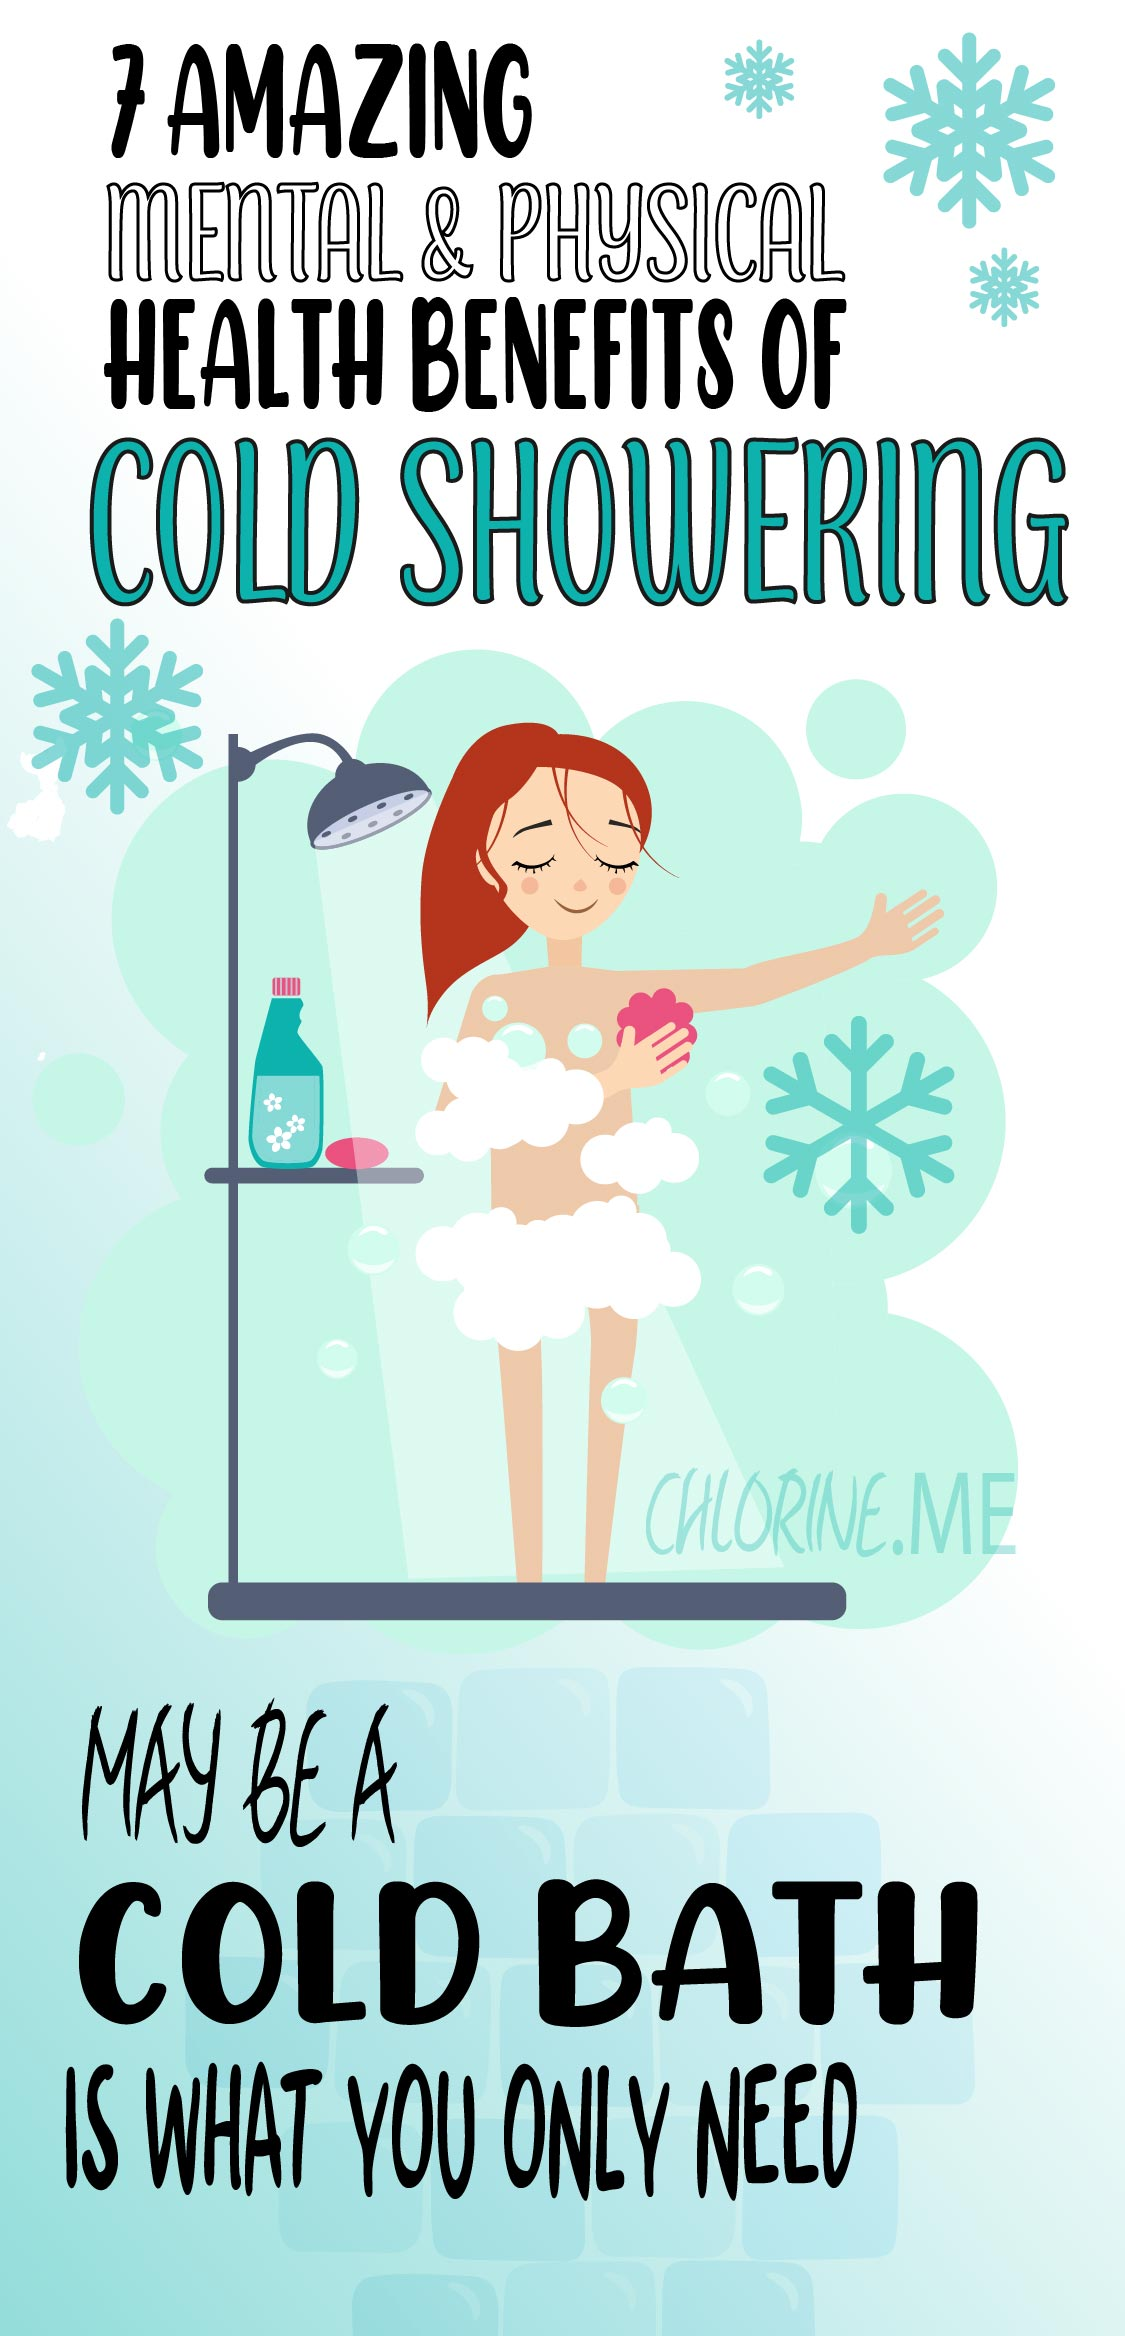 amazing health benefits of cold bath cold shower